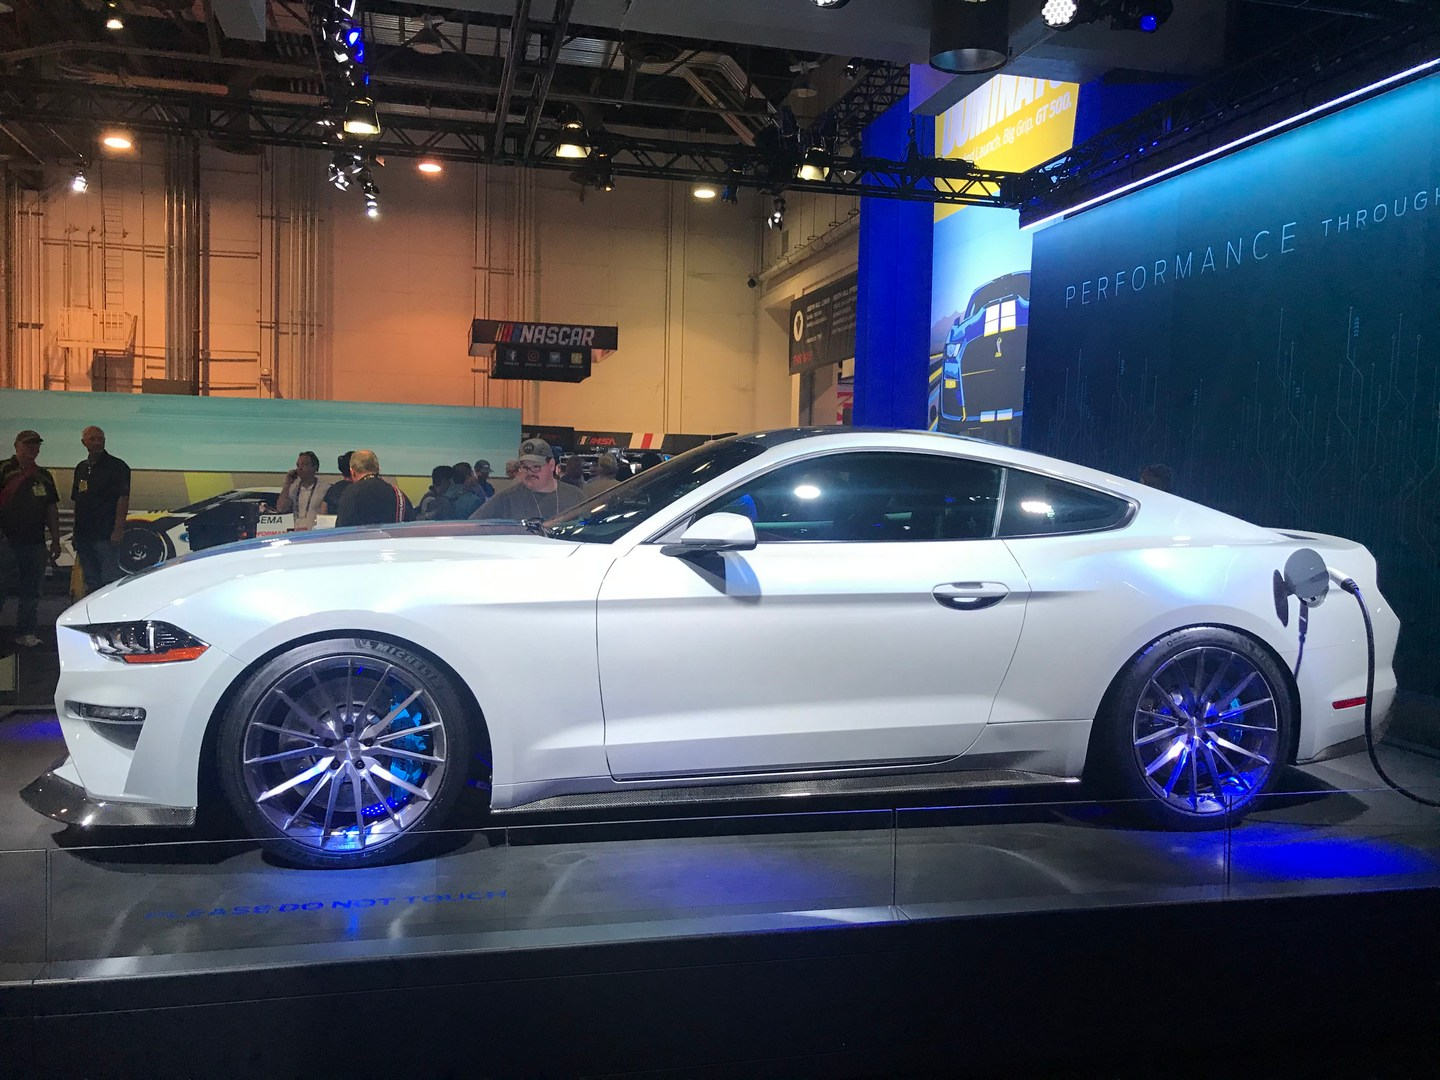 According to multiple reports, the company is seriously planning to make its iconic muscle car run on electric power. It is official that the next generation goes hybrid, but not EV, so we will likely have to wait a bit longer than that.